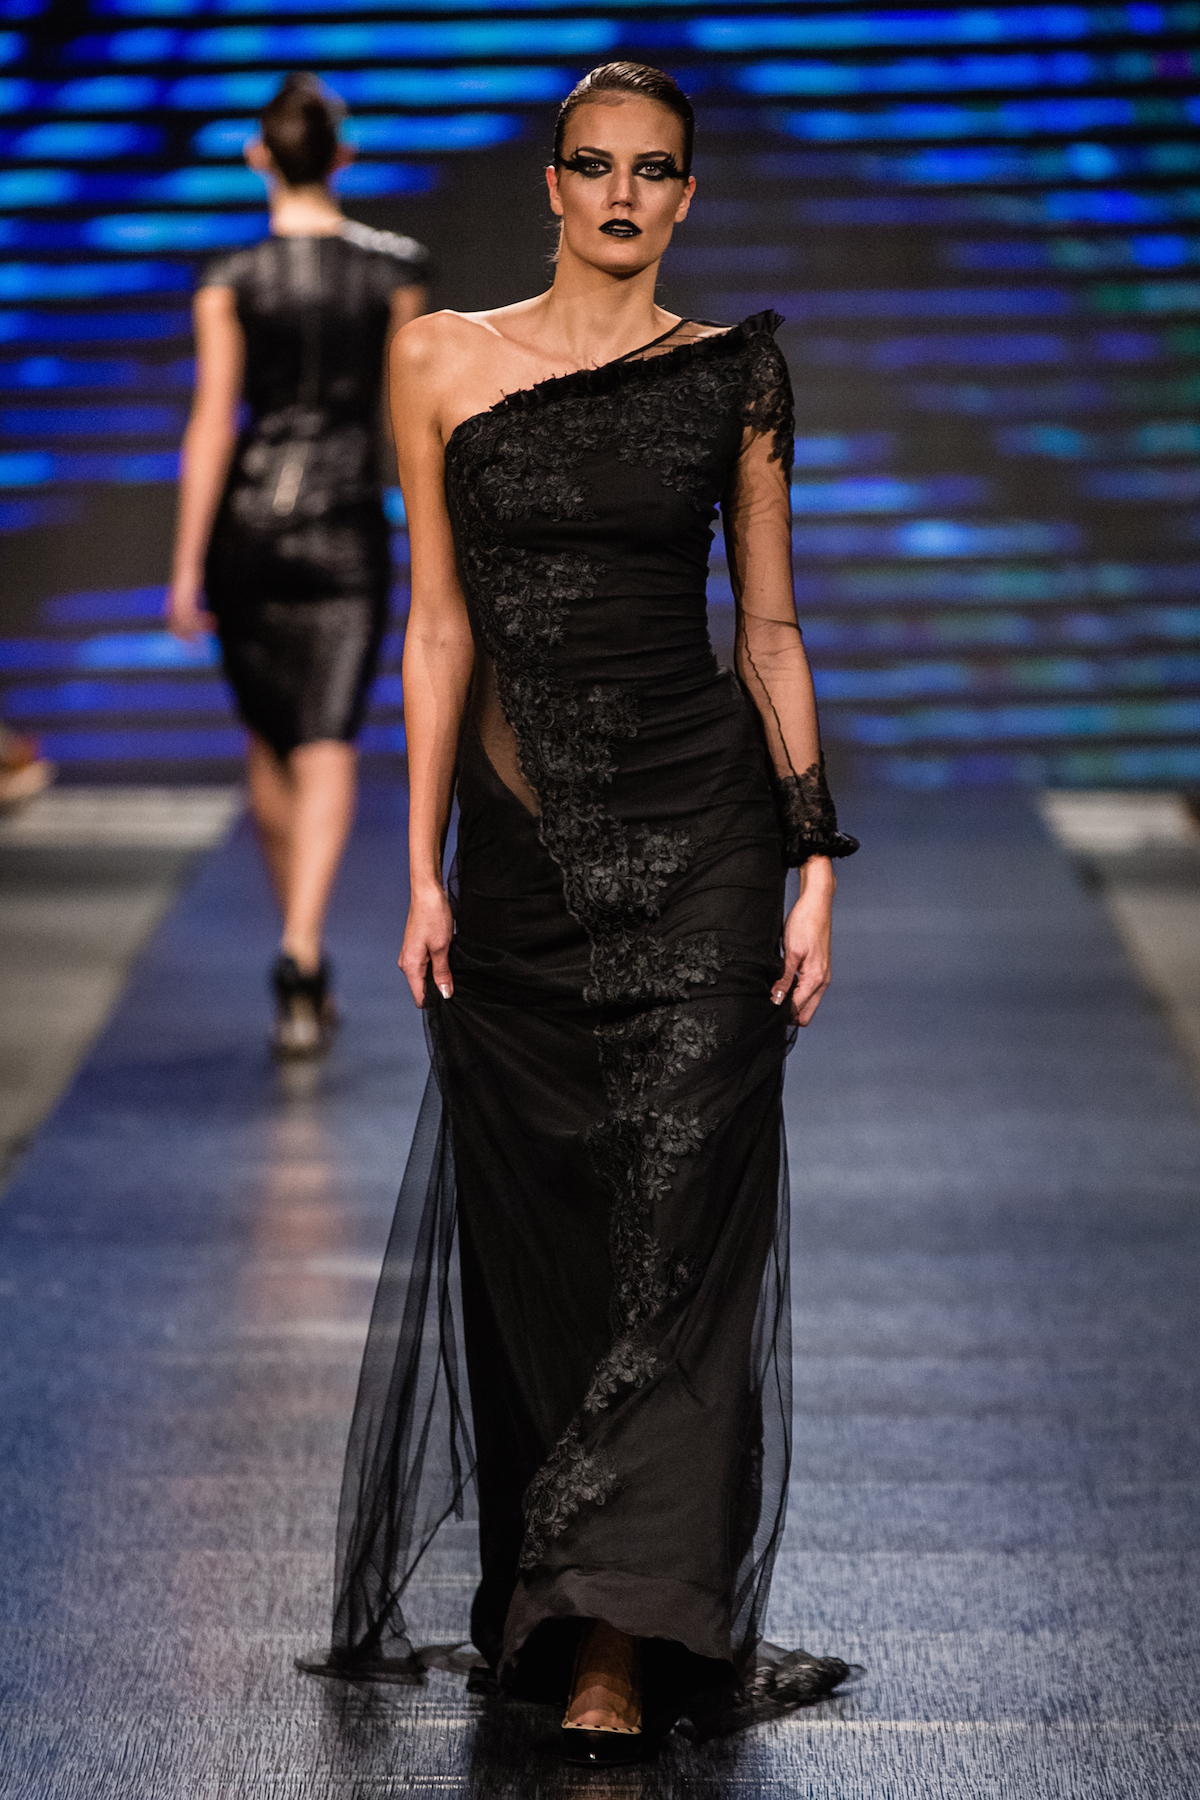 ZVONKO MARKOVIC - Encore Presentation at the Serbia Fashion Week